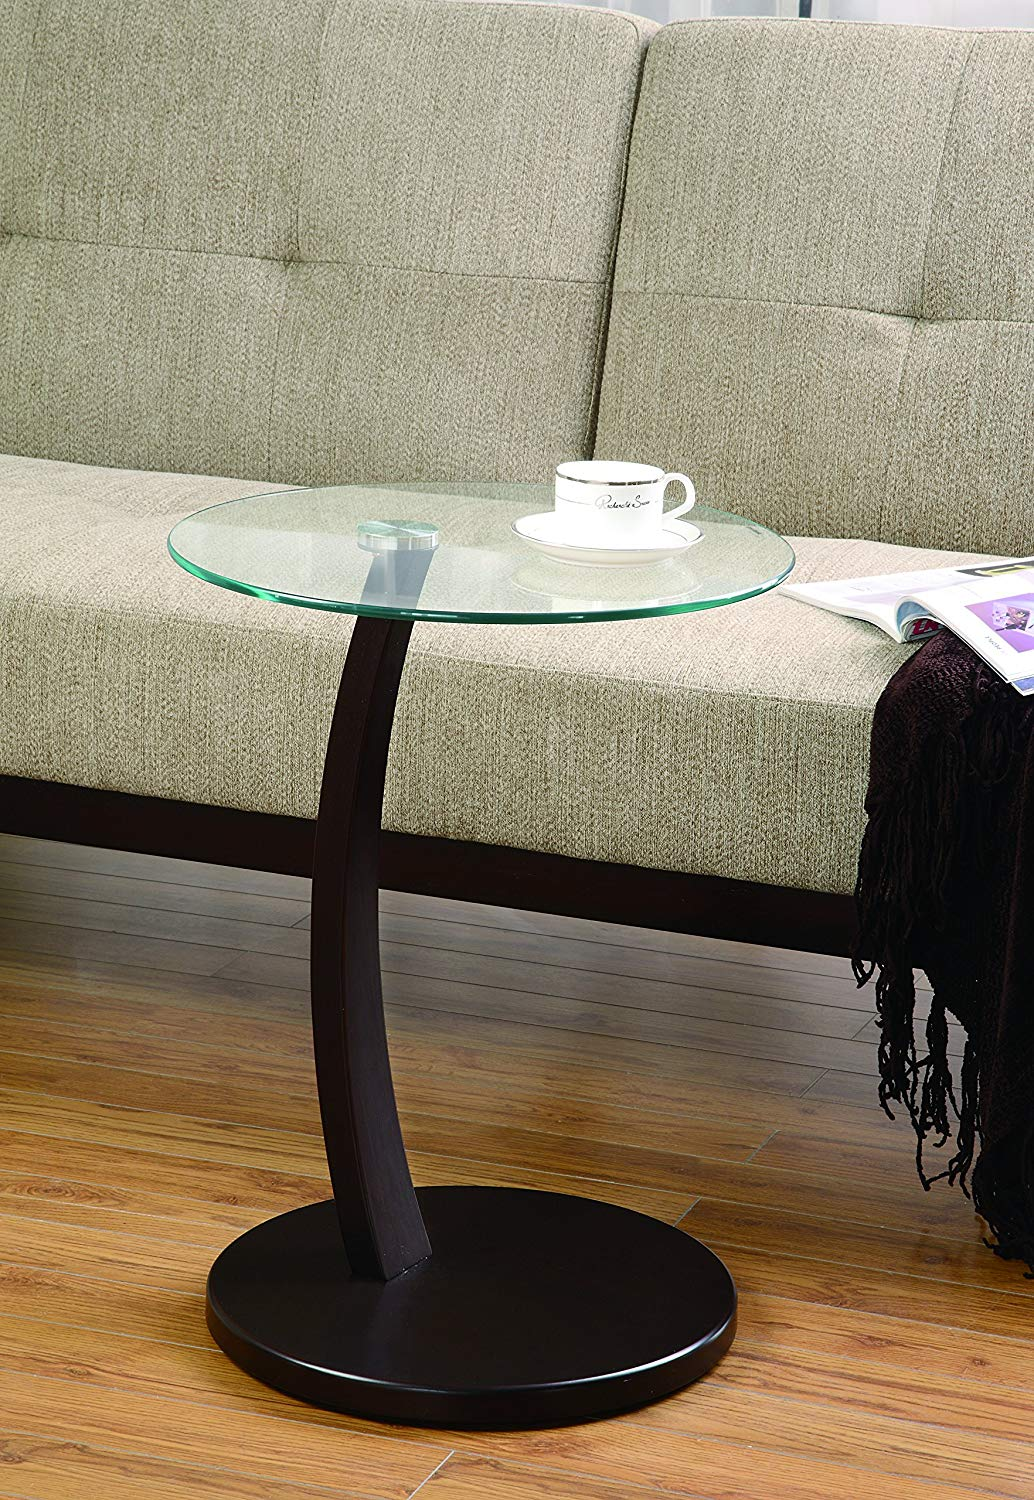 coaster home furnishings accent table with round glass top cappuccino and clear kitchen dining modern contemporary end tables chairs edmonton chinese porcelain lamps wireless